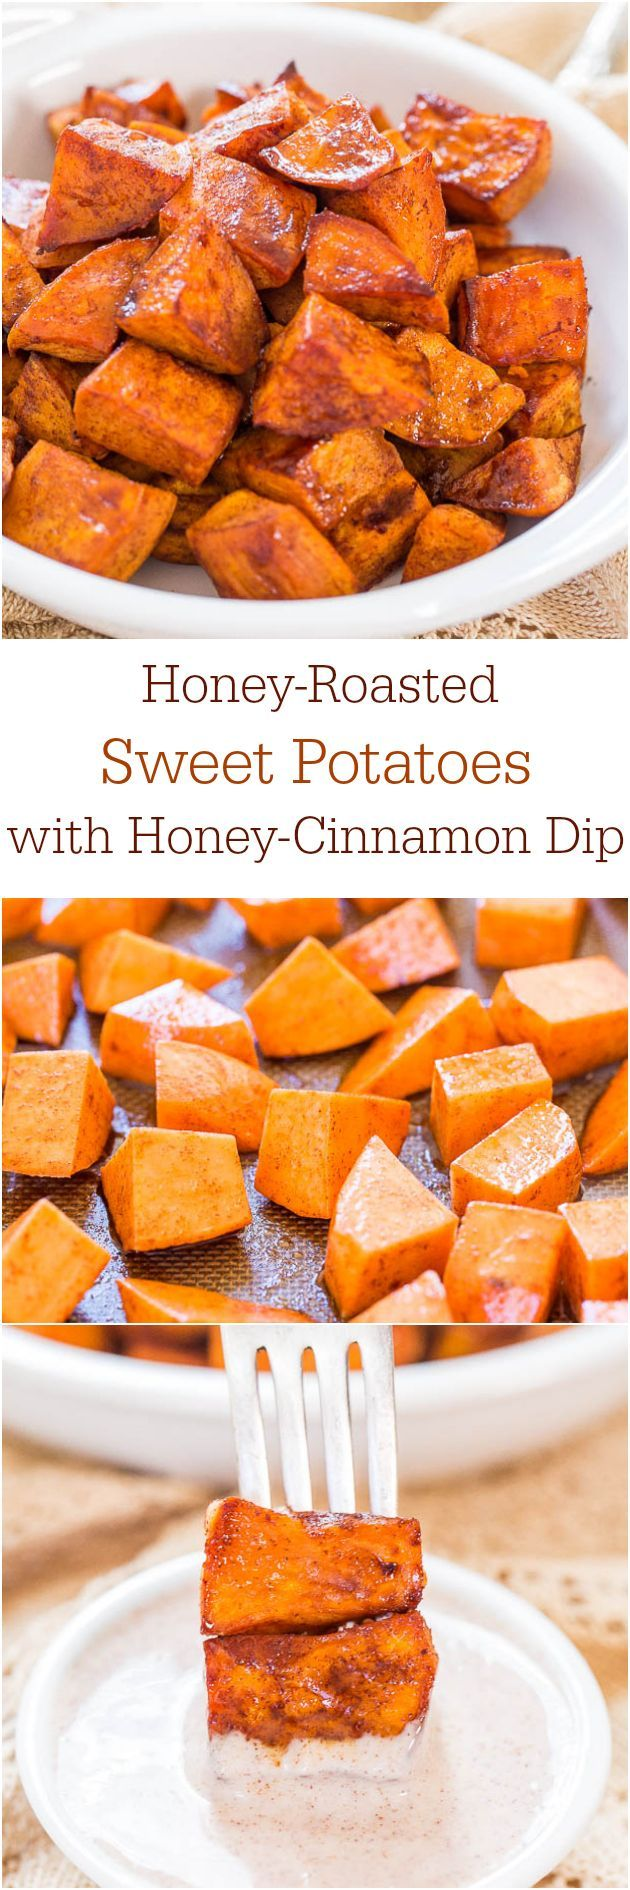 Honey-Roasted Sweet Potatoes with Honey-Cinnamon Dip - The honey glaze ...